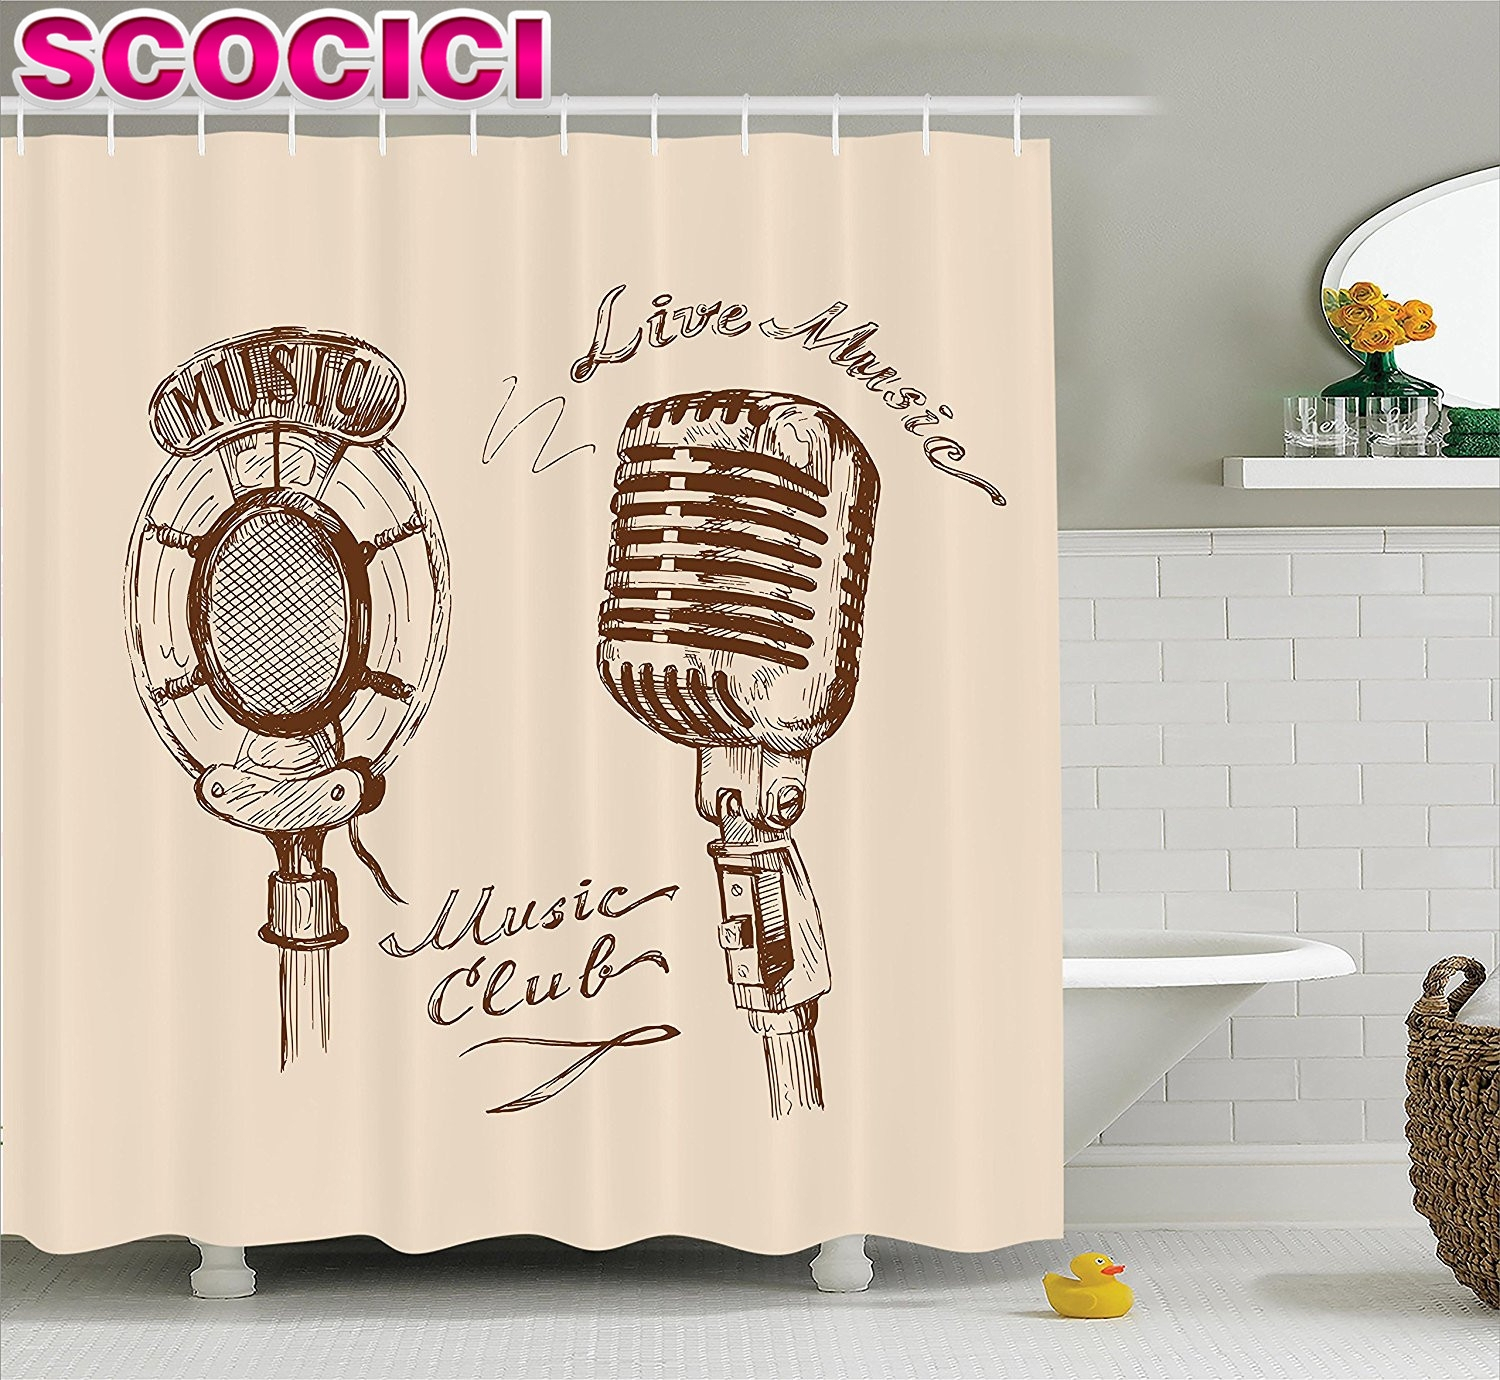 Excellent Jazz Shower Curtain Images Bathtub For Bathroom Ideas inside size 1500 X 1380